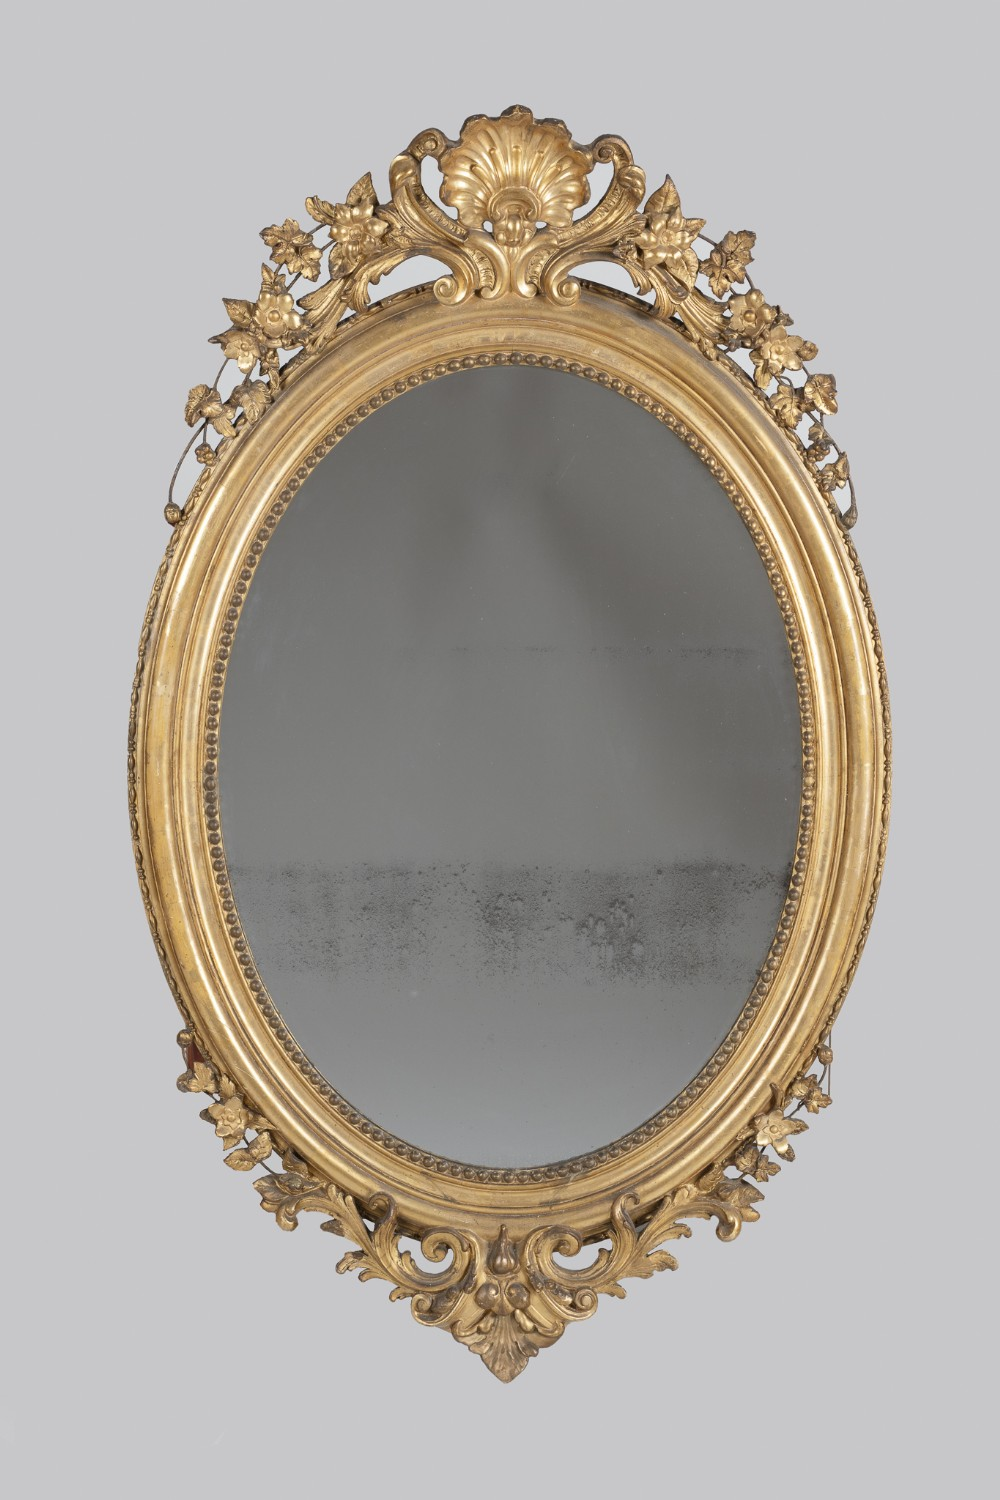 19th century french large gilt oval wall mirror